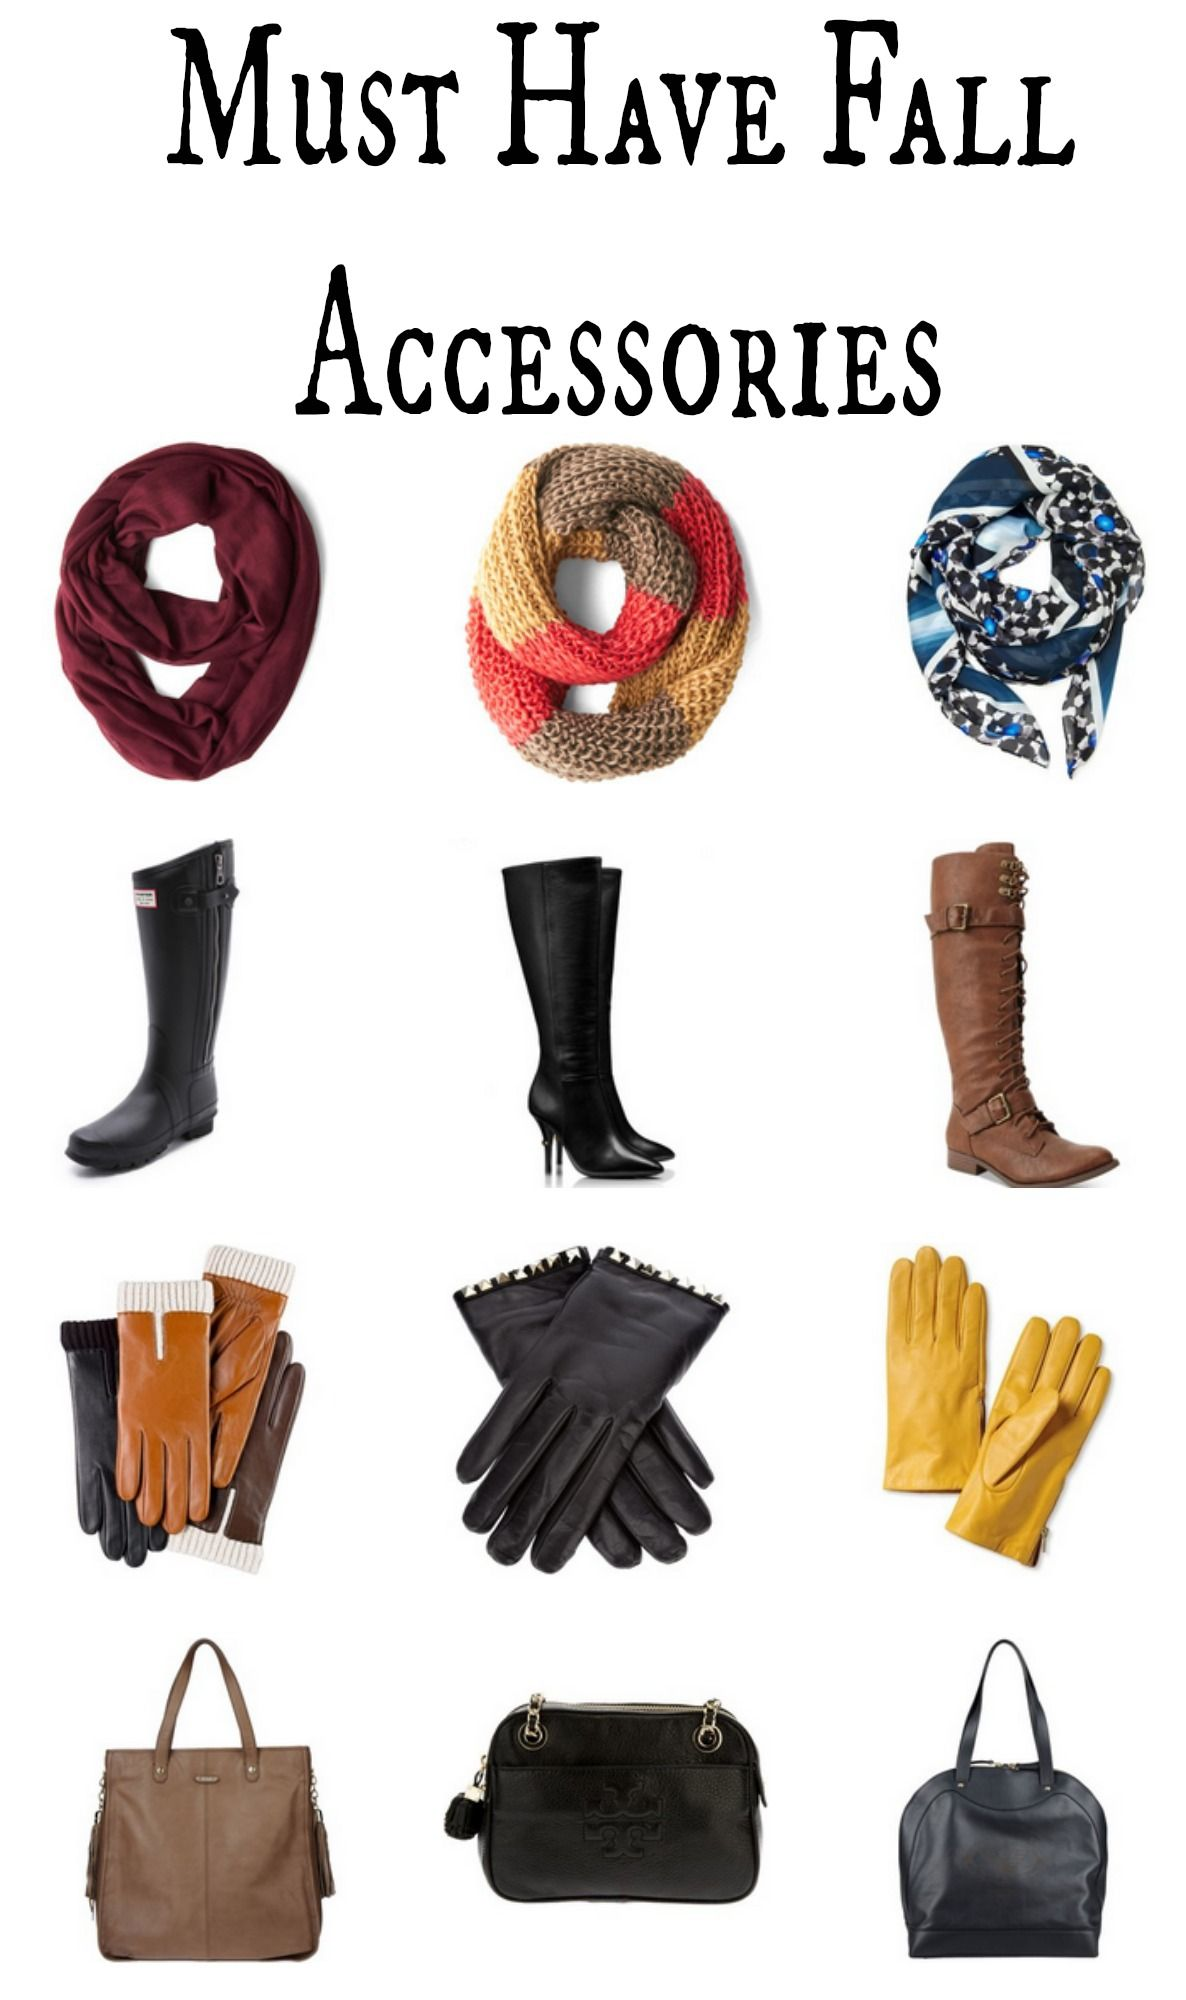 Have must accessories for fall